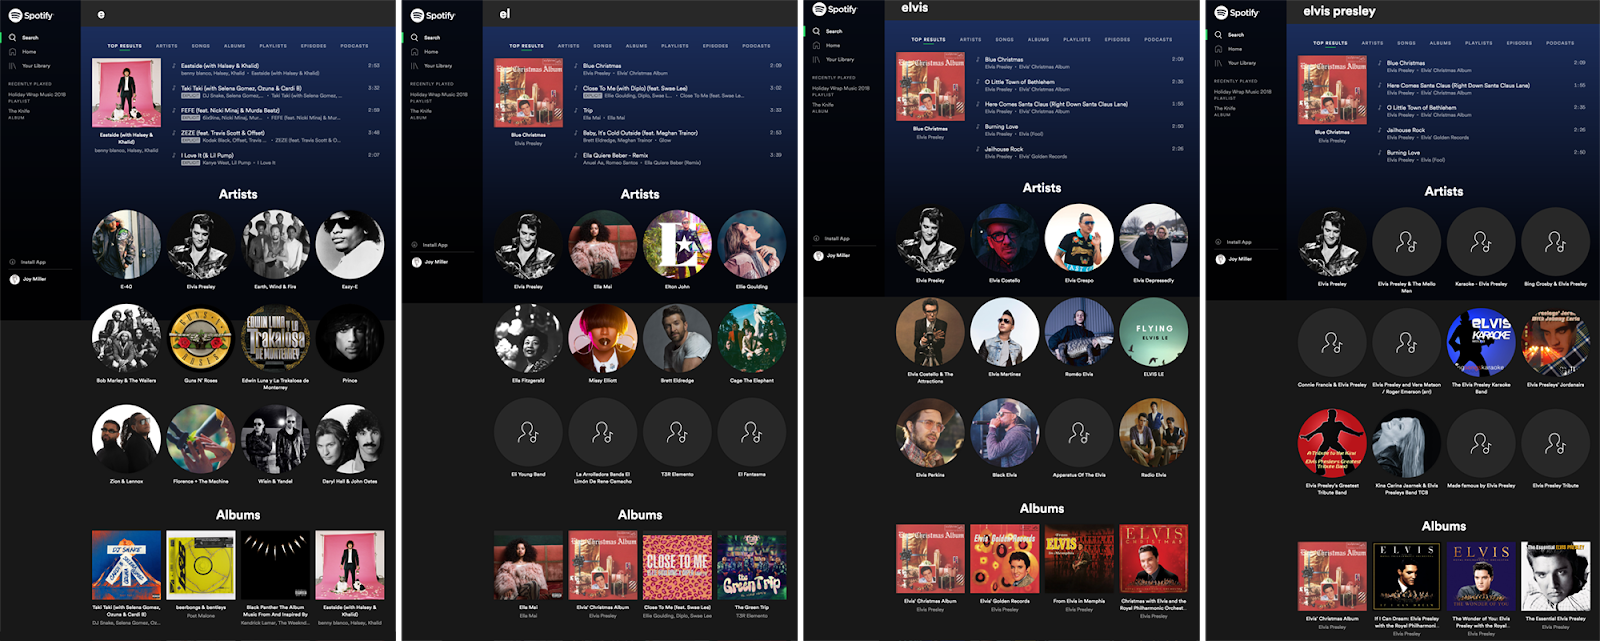 Spotify uses predictive search to help users find what they're looking for quickly